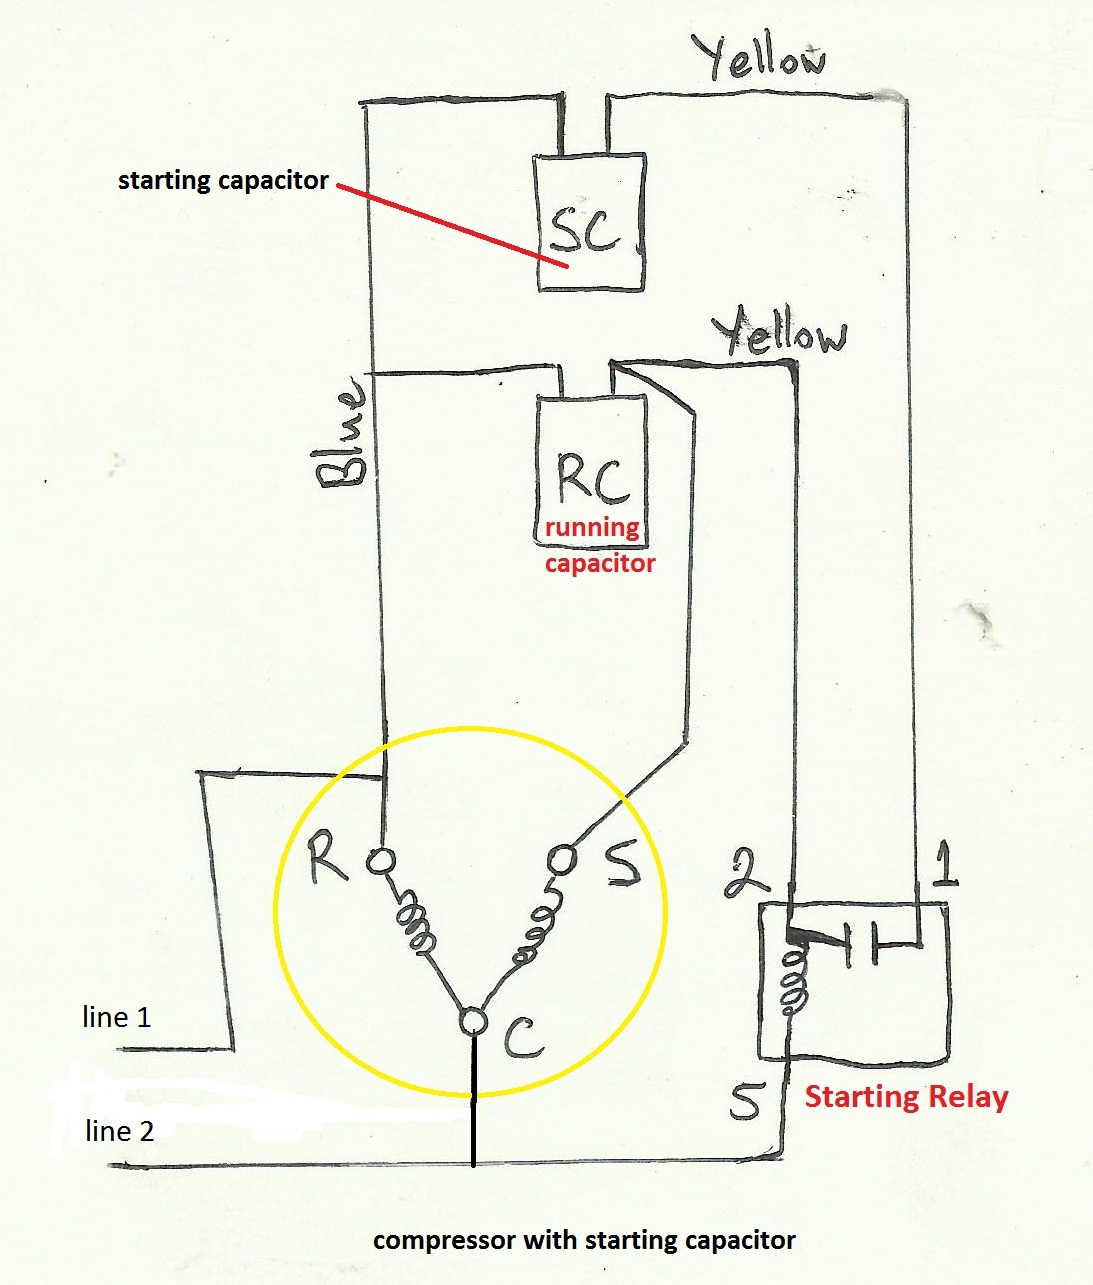 refrigeration and air conditioning repair wiring diagram of wiring diagram of compressor starting capacitor automatic washing machine diagram window type electronic aircon hitachi